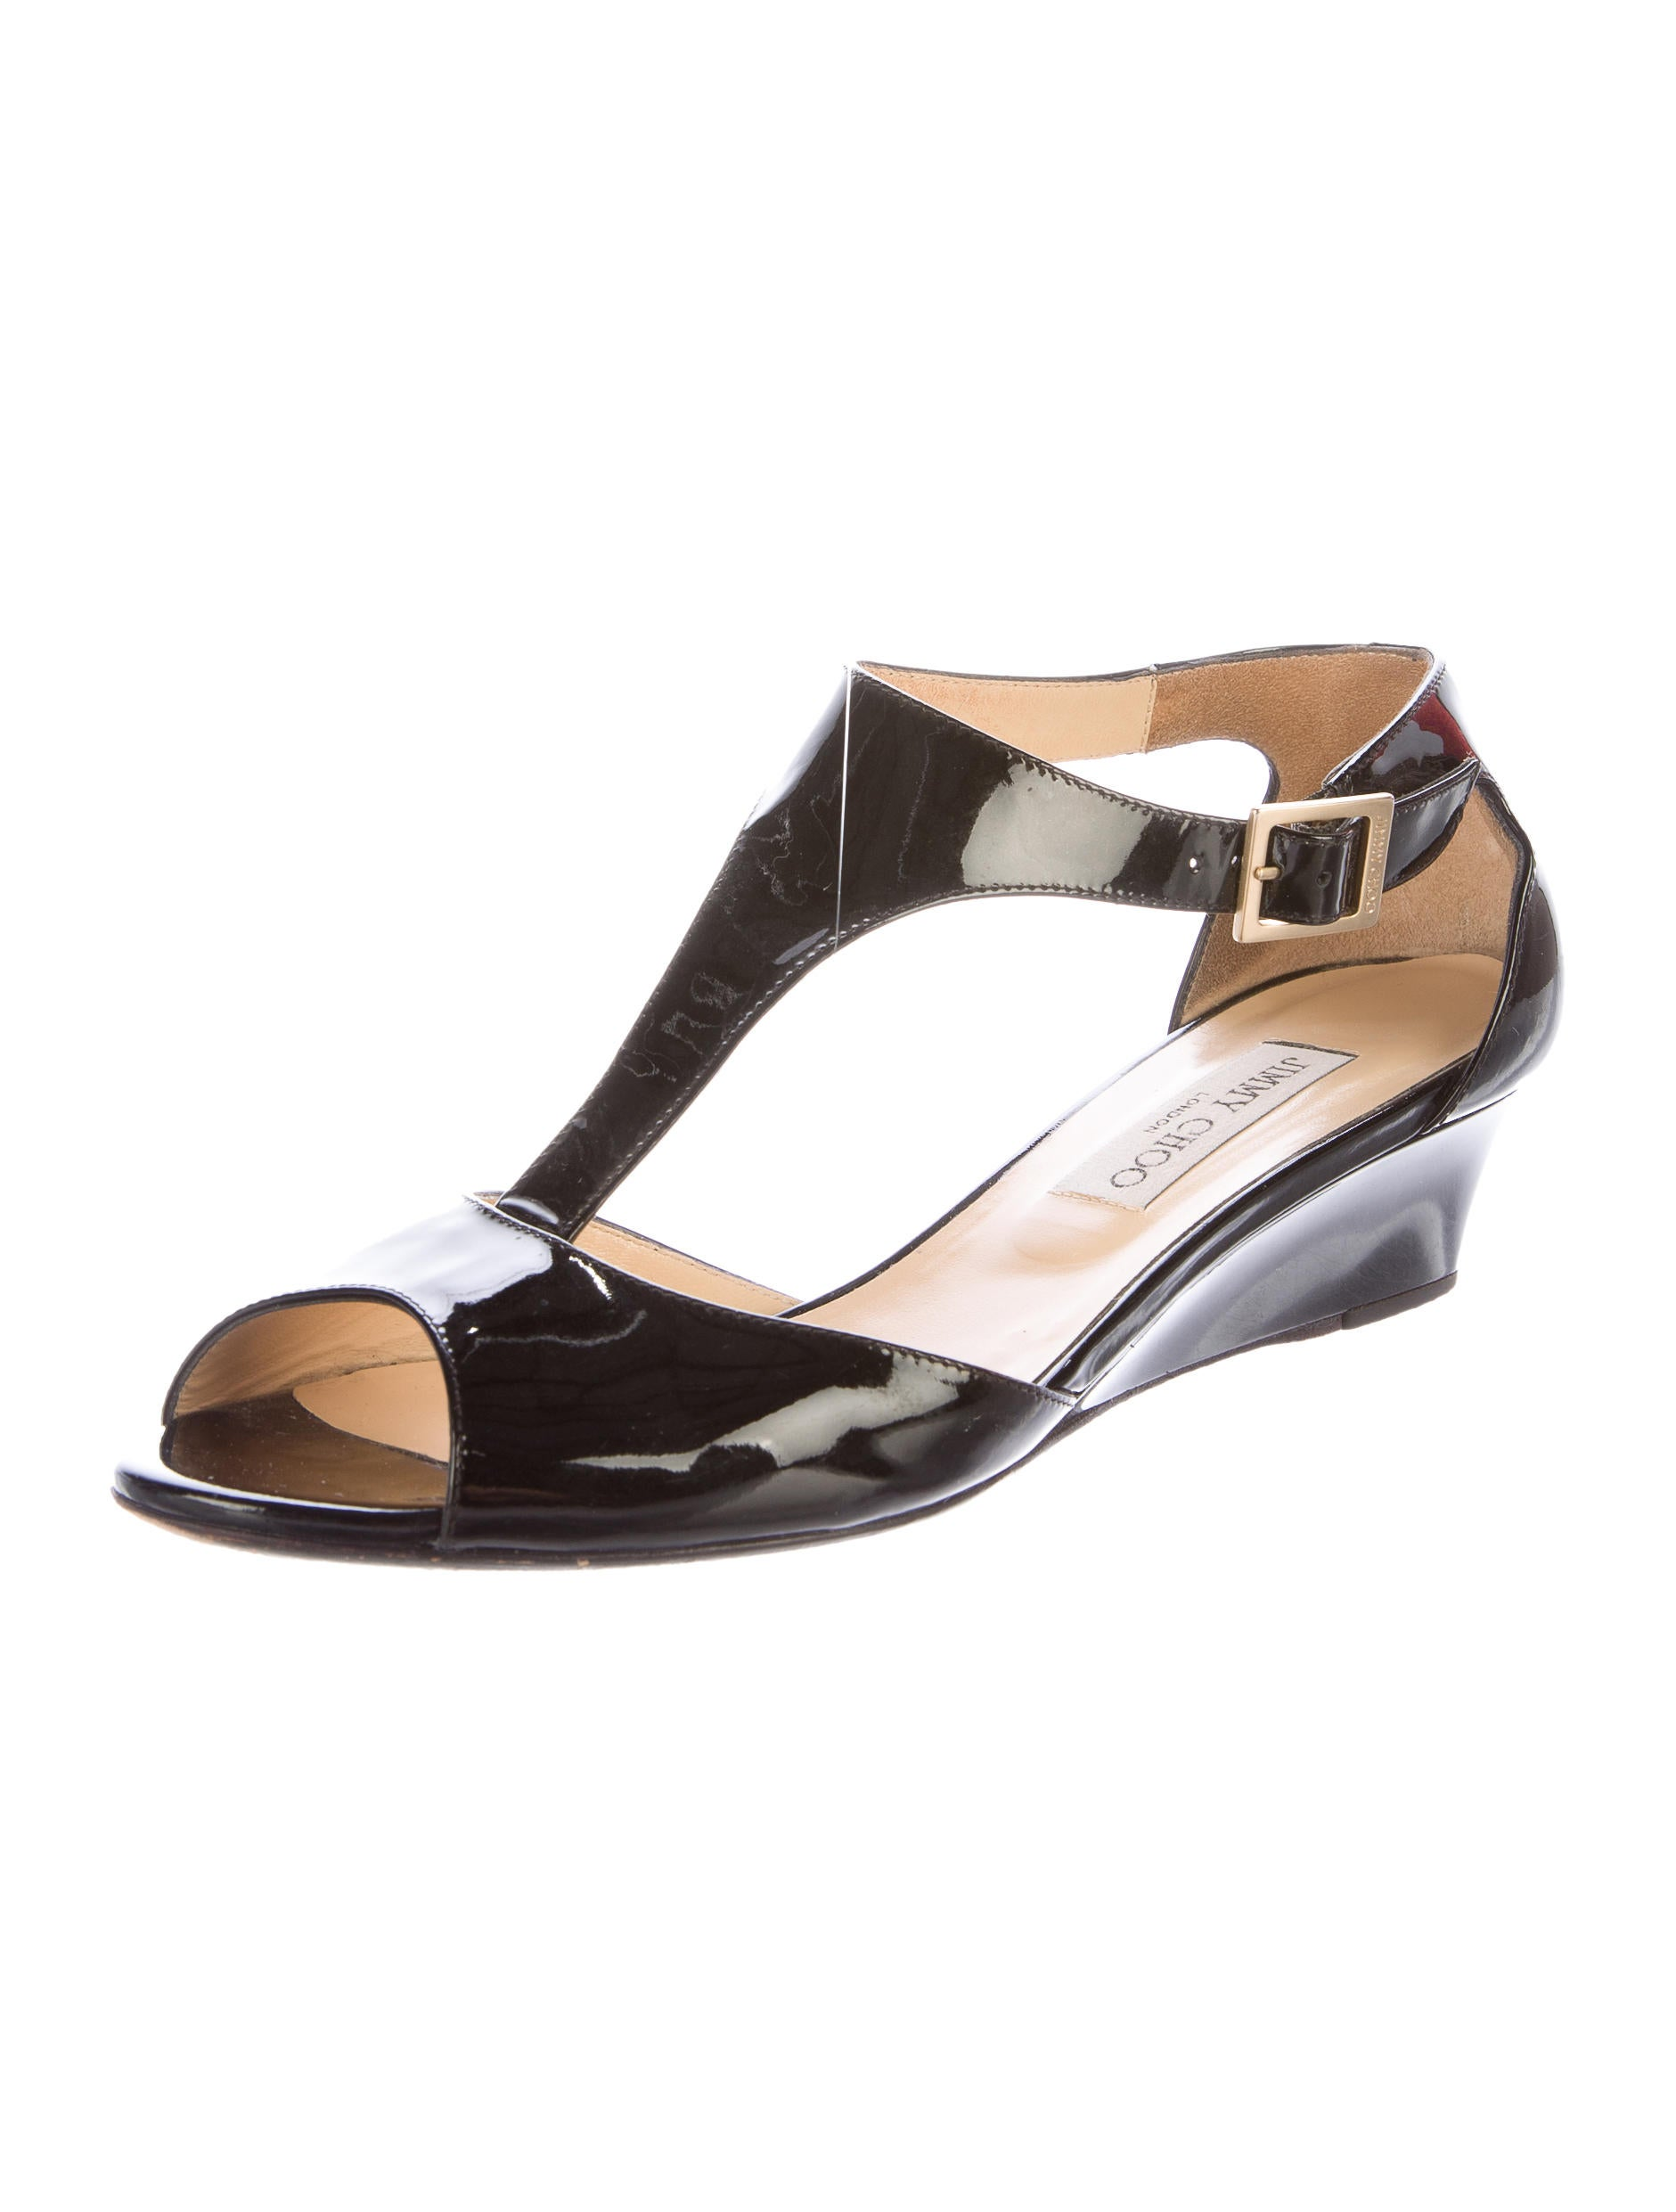 jimmy choo patent leather wedge sandals shoes jim62087